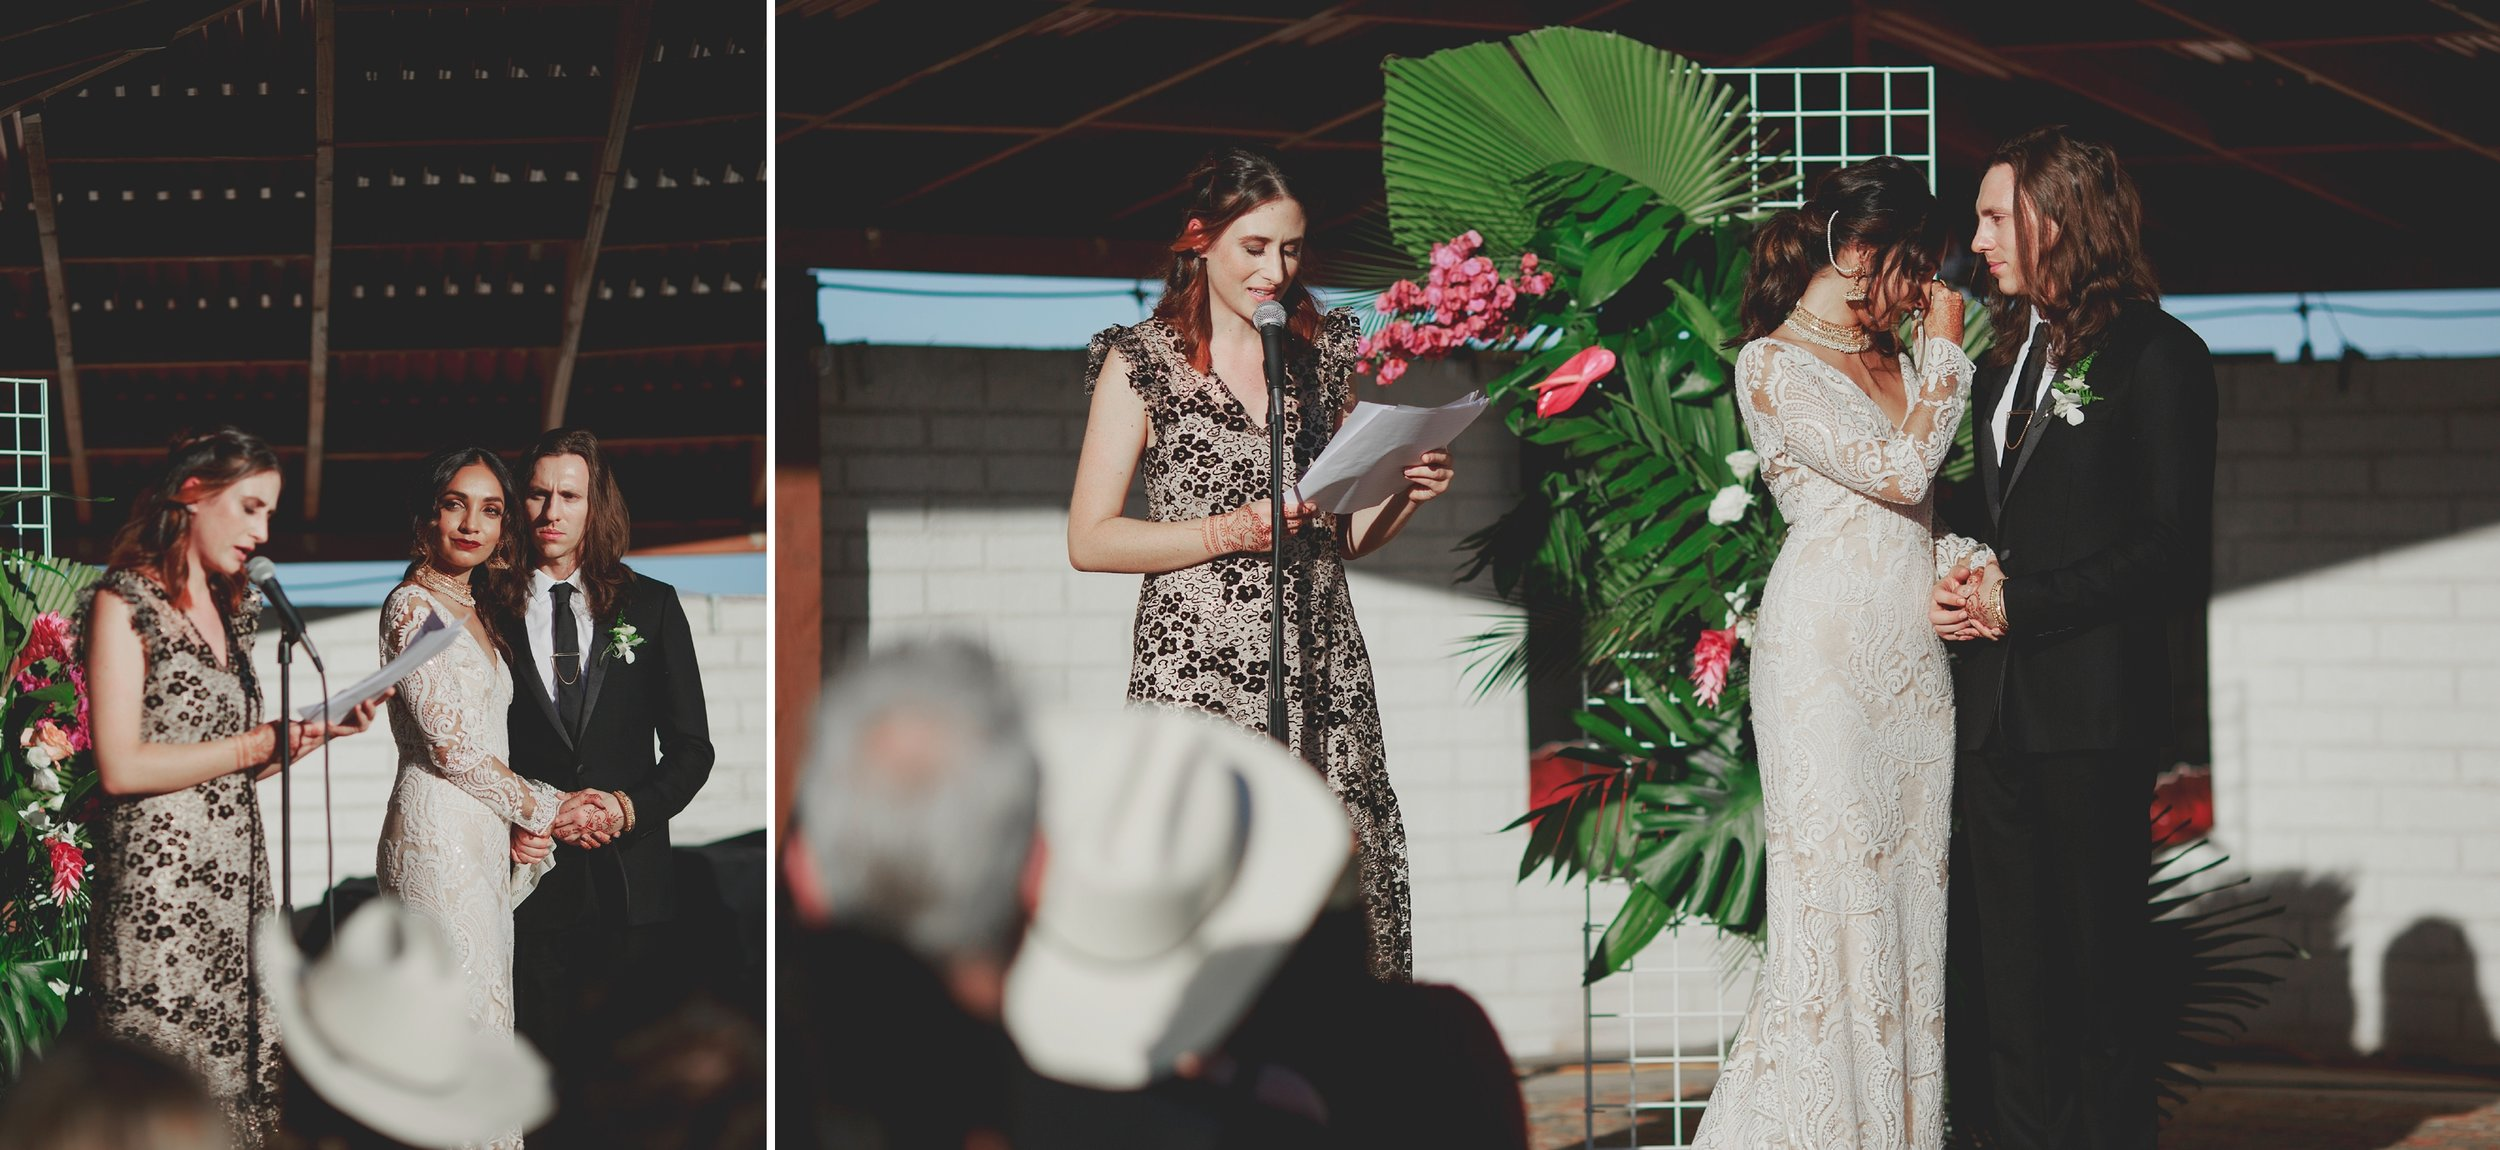 amanda_vanvels_joshua_tree_inn_wedding_081.jpg